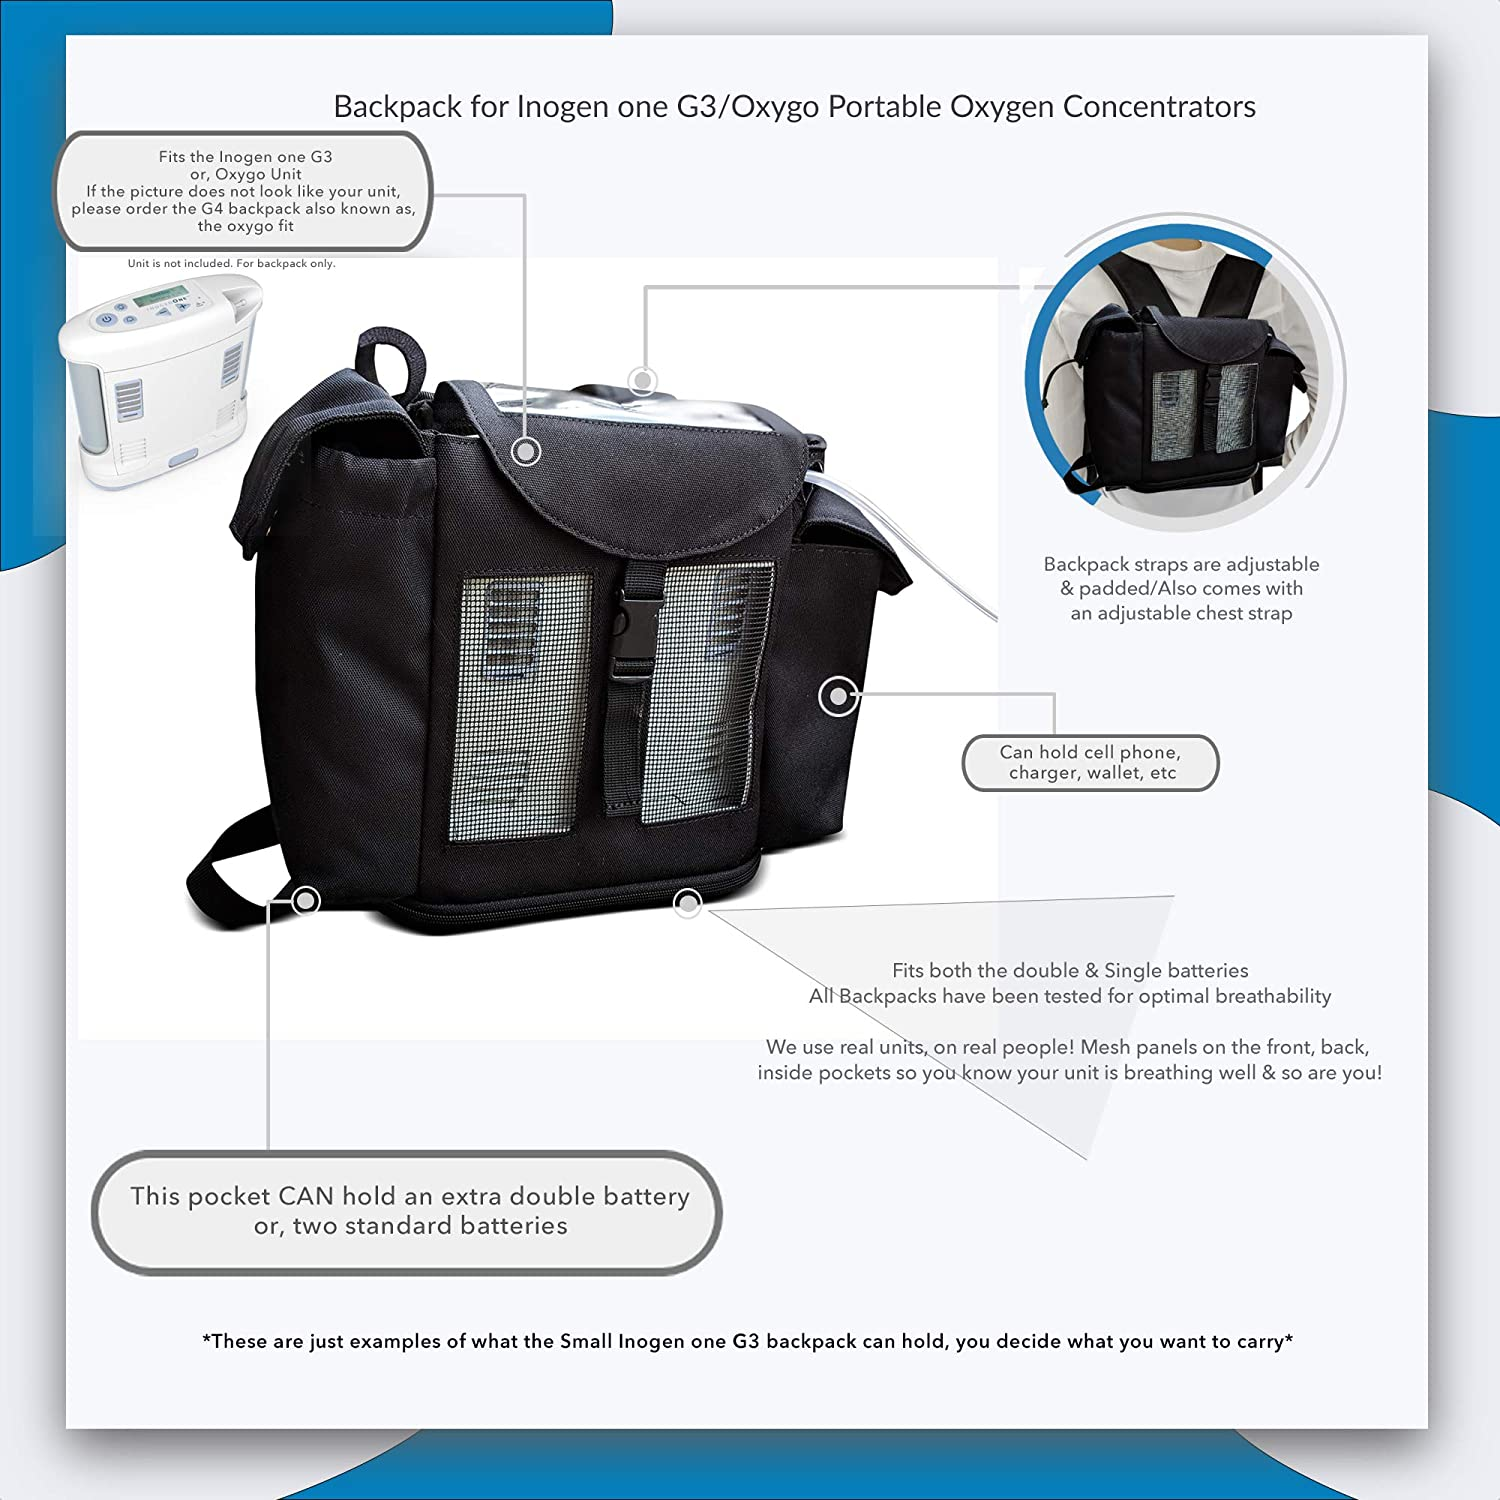 cc57b0b28 Amazon.com: Inogen One G3 Backpack and Oxygo, Wallet, Phone, Inogen  Accessories, Small Backpack for Inogen g3/o2totes: Health & Personal Care